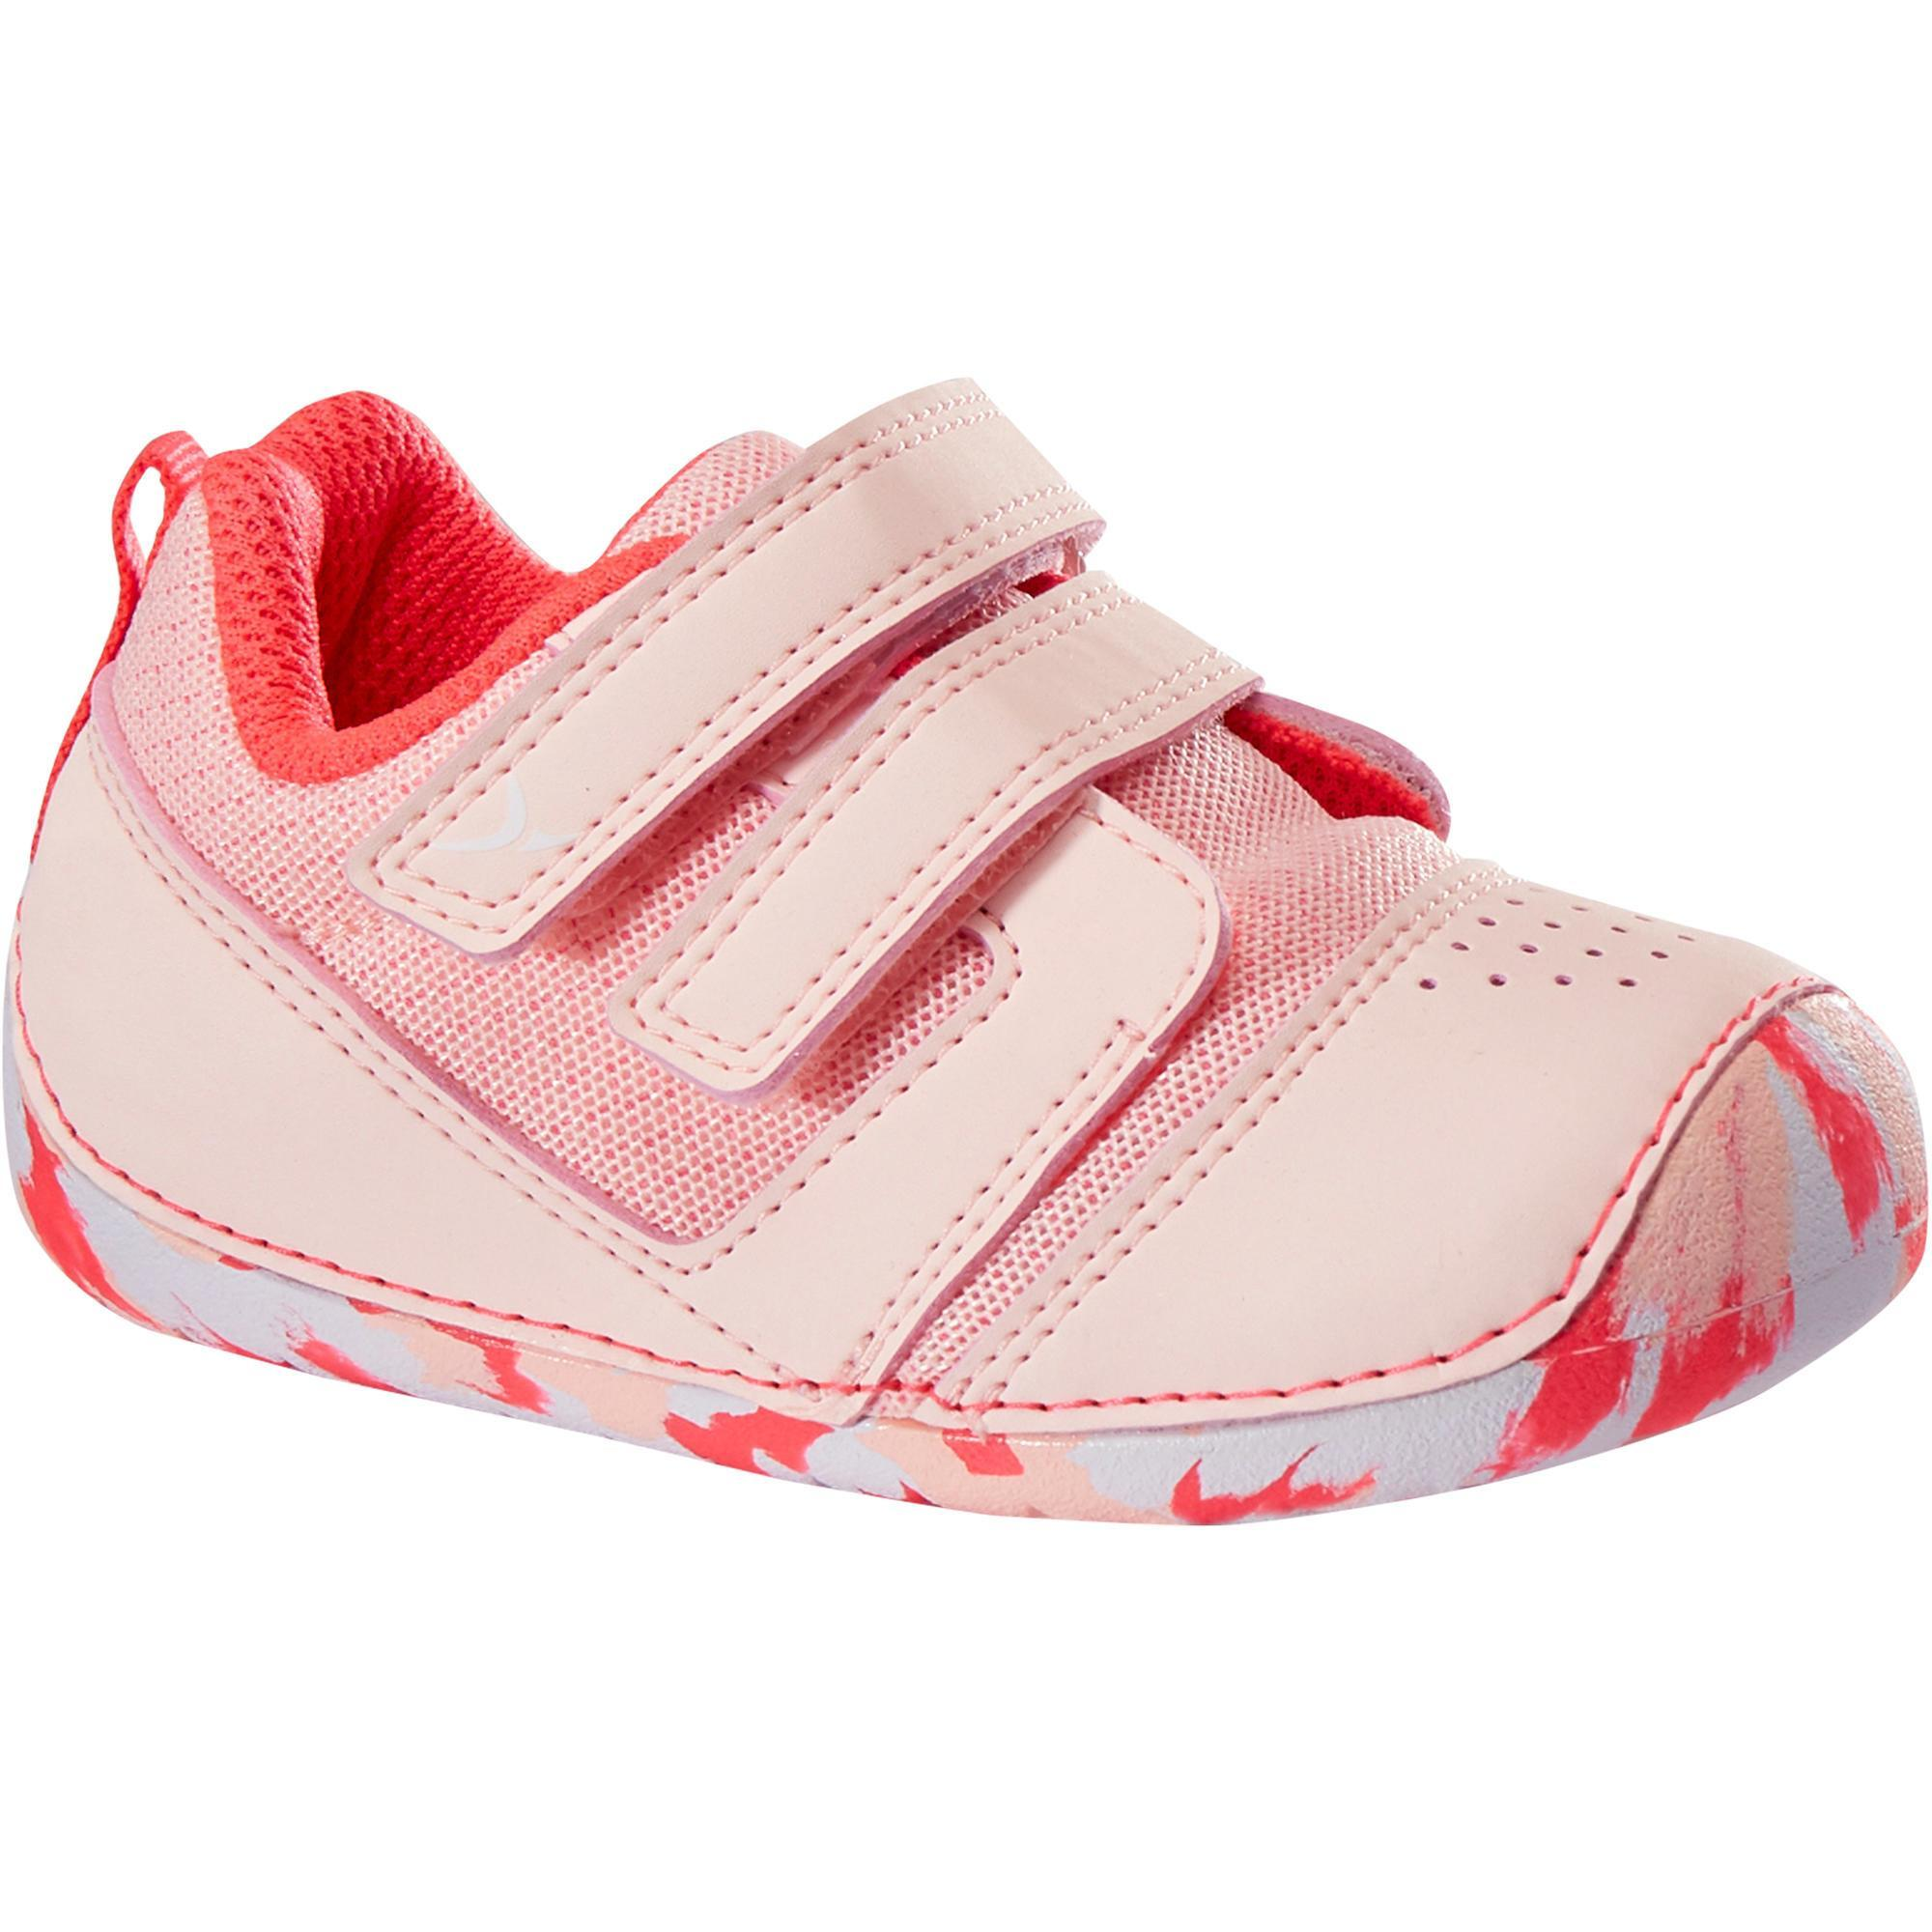 Chaussures 510 i learn breath rose pale xco domyos